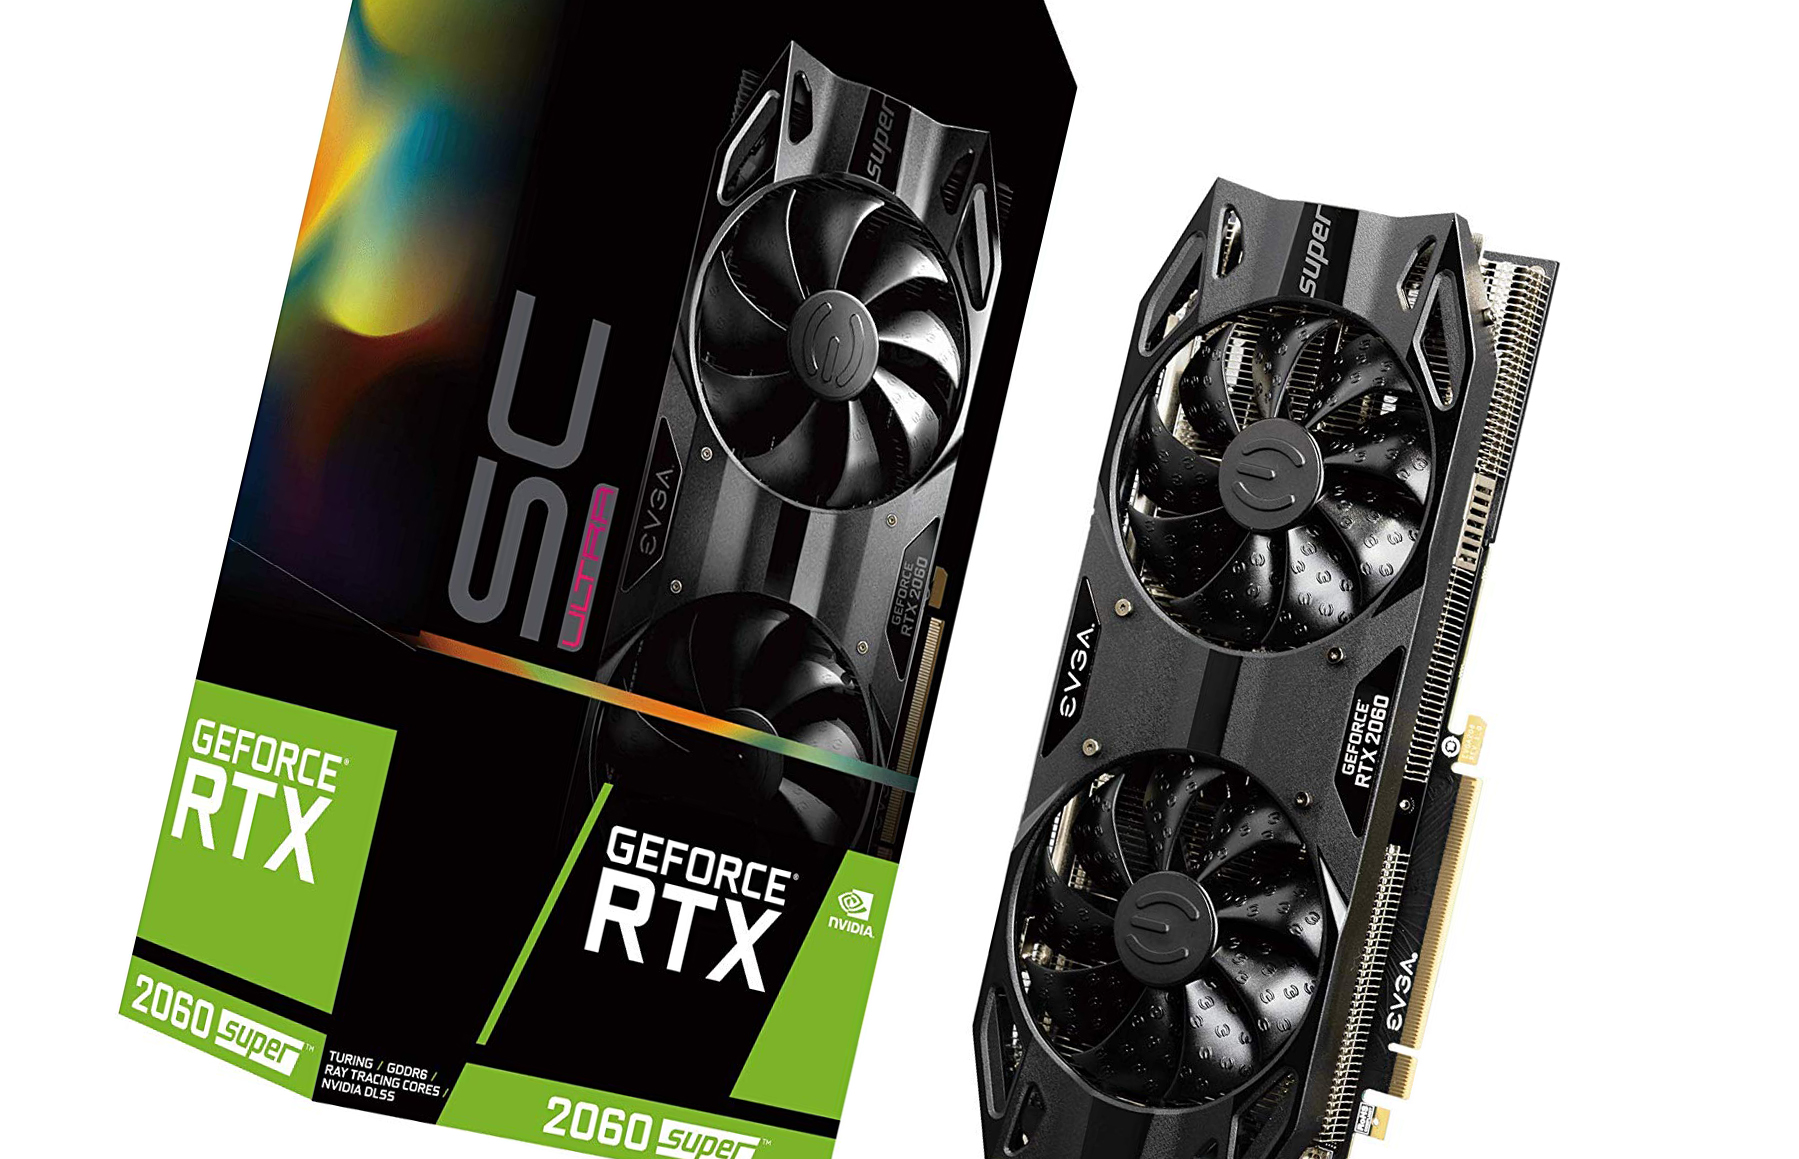 The cheapest RTX 2060 Super model to date - from EVGA